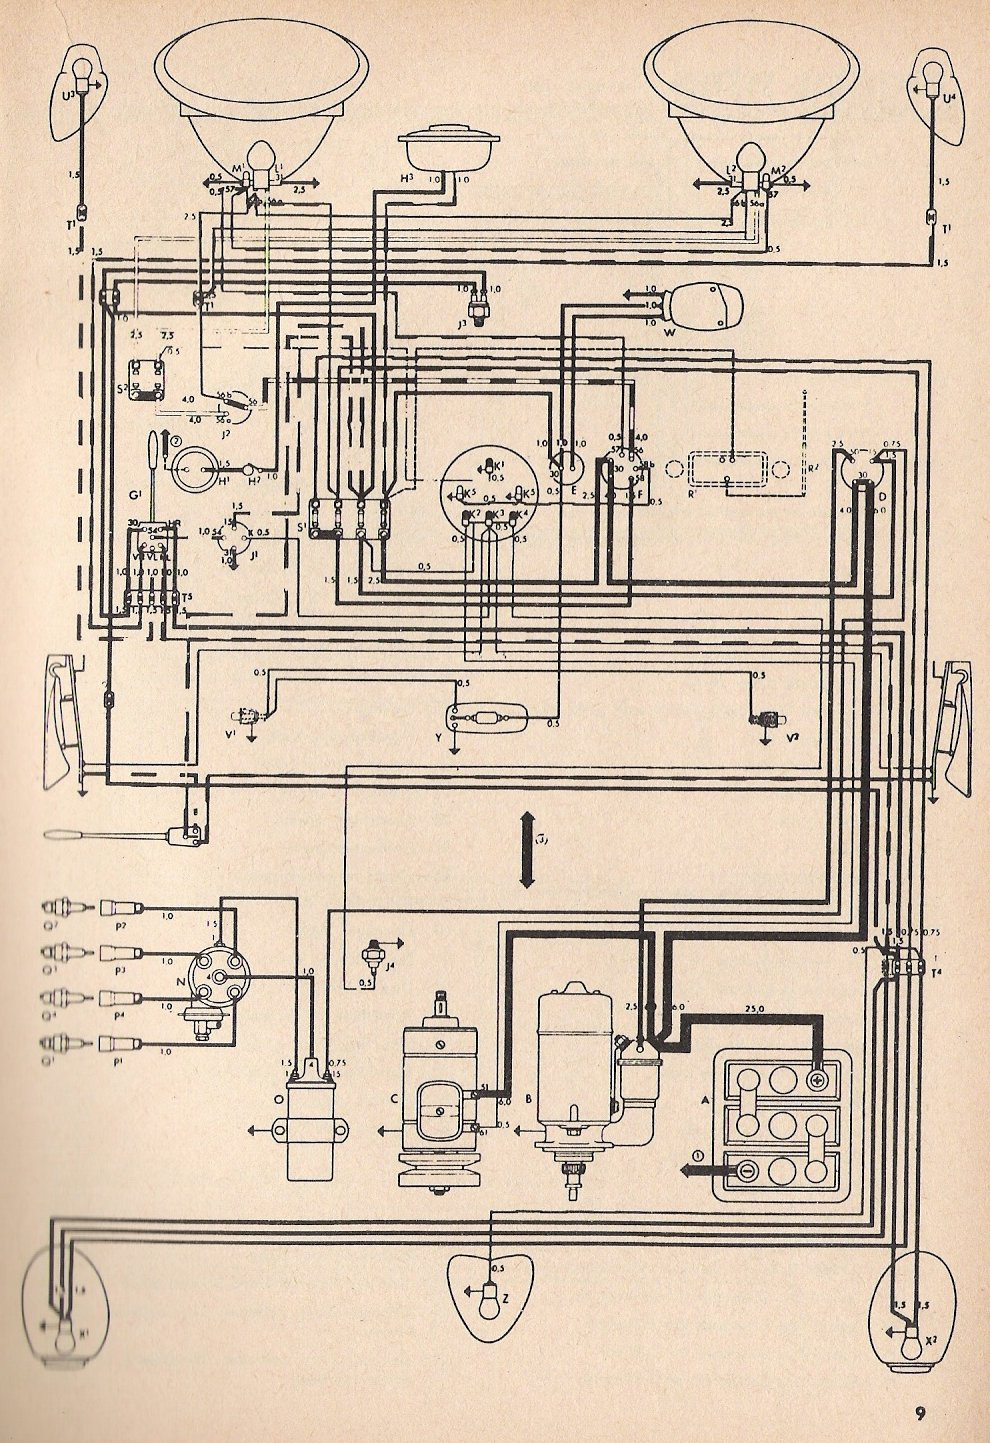 Type 1 Wiring Diagrams 1965 Ford Mustang Gas Gauge Diagram